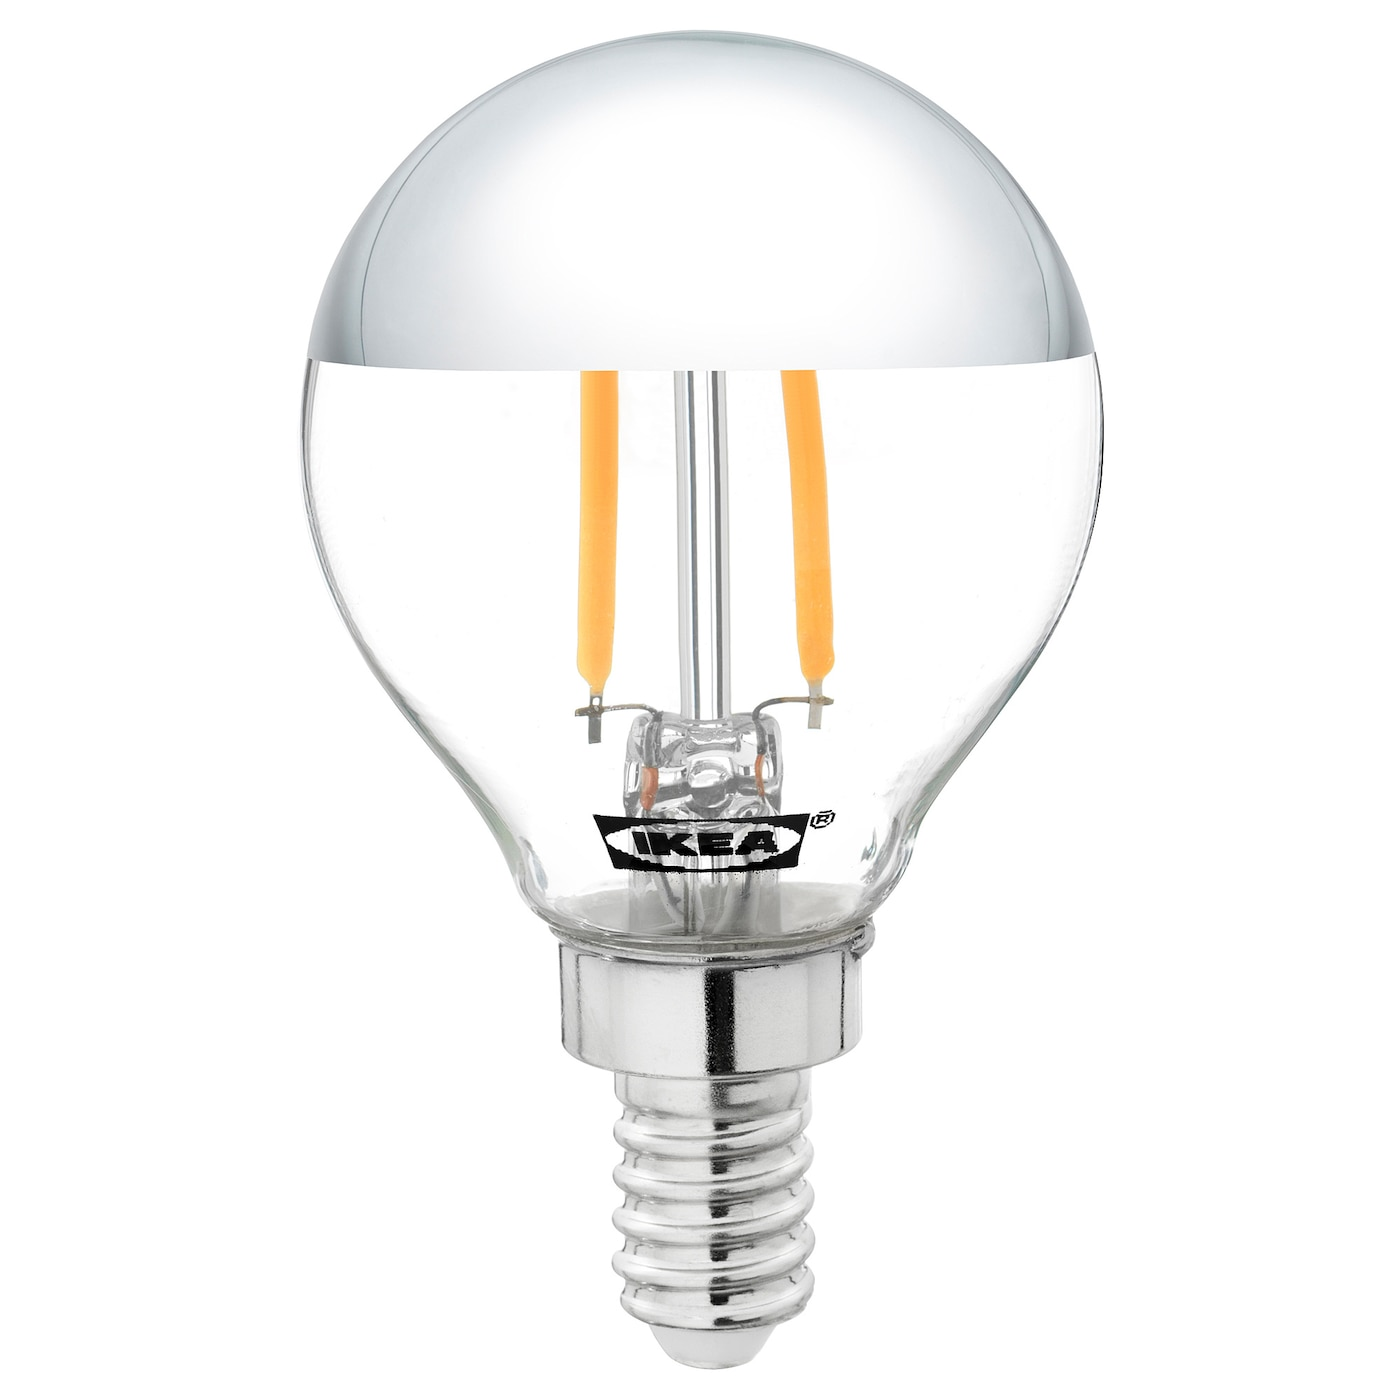 IKEA SILLBO LED bulb E14 140 lumen Spreads a warm and decorative light.